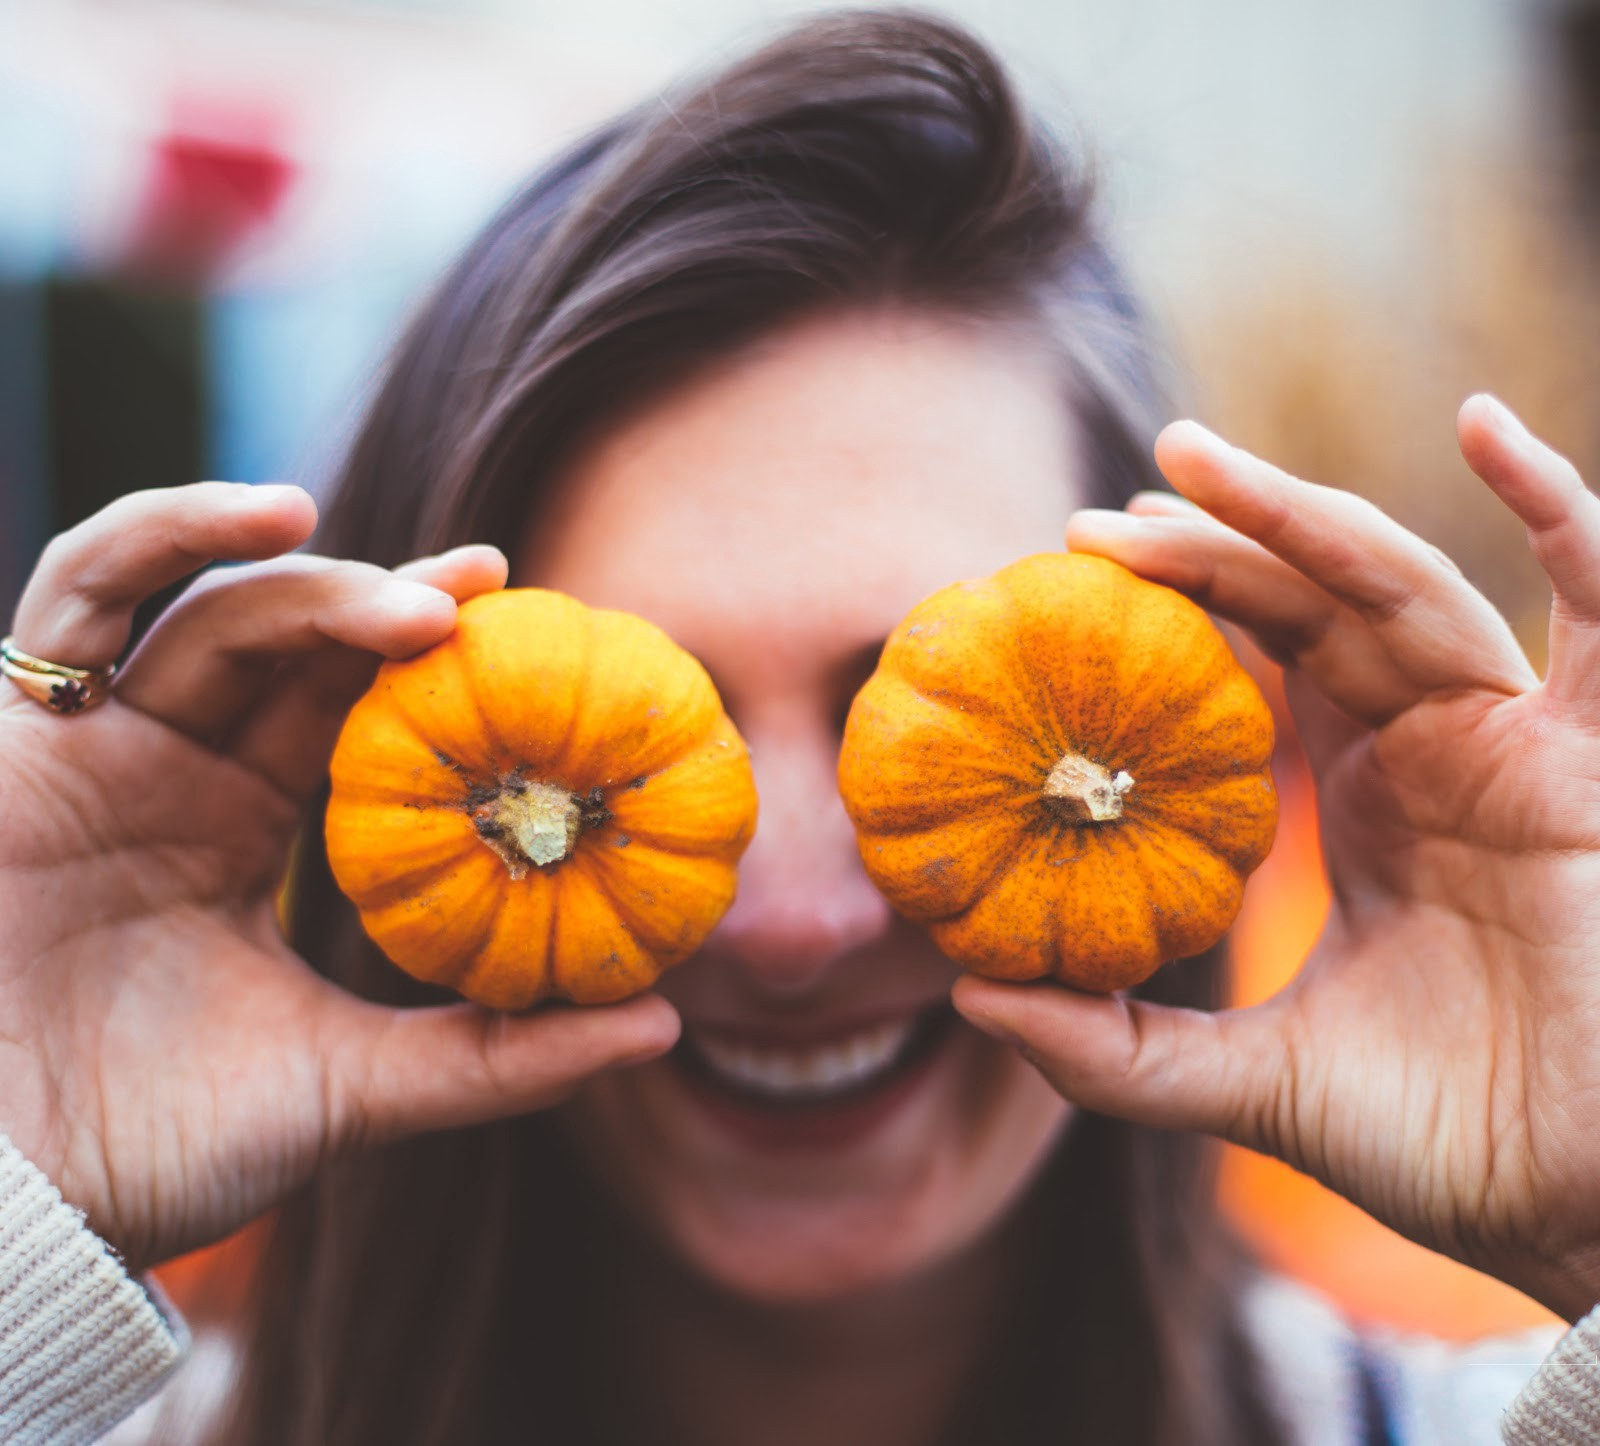 Smiling woman holding two small pumpkins in front of her eyes.